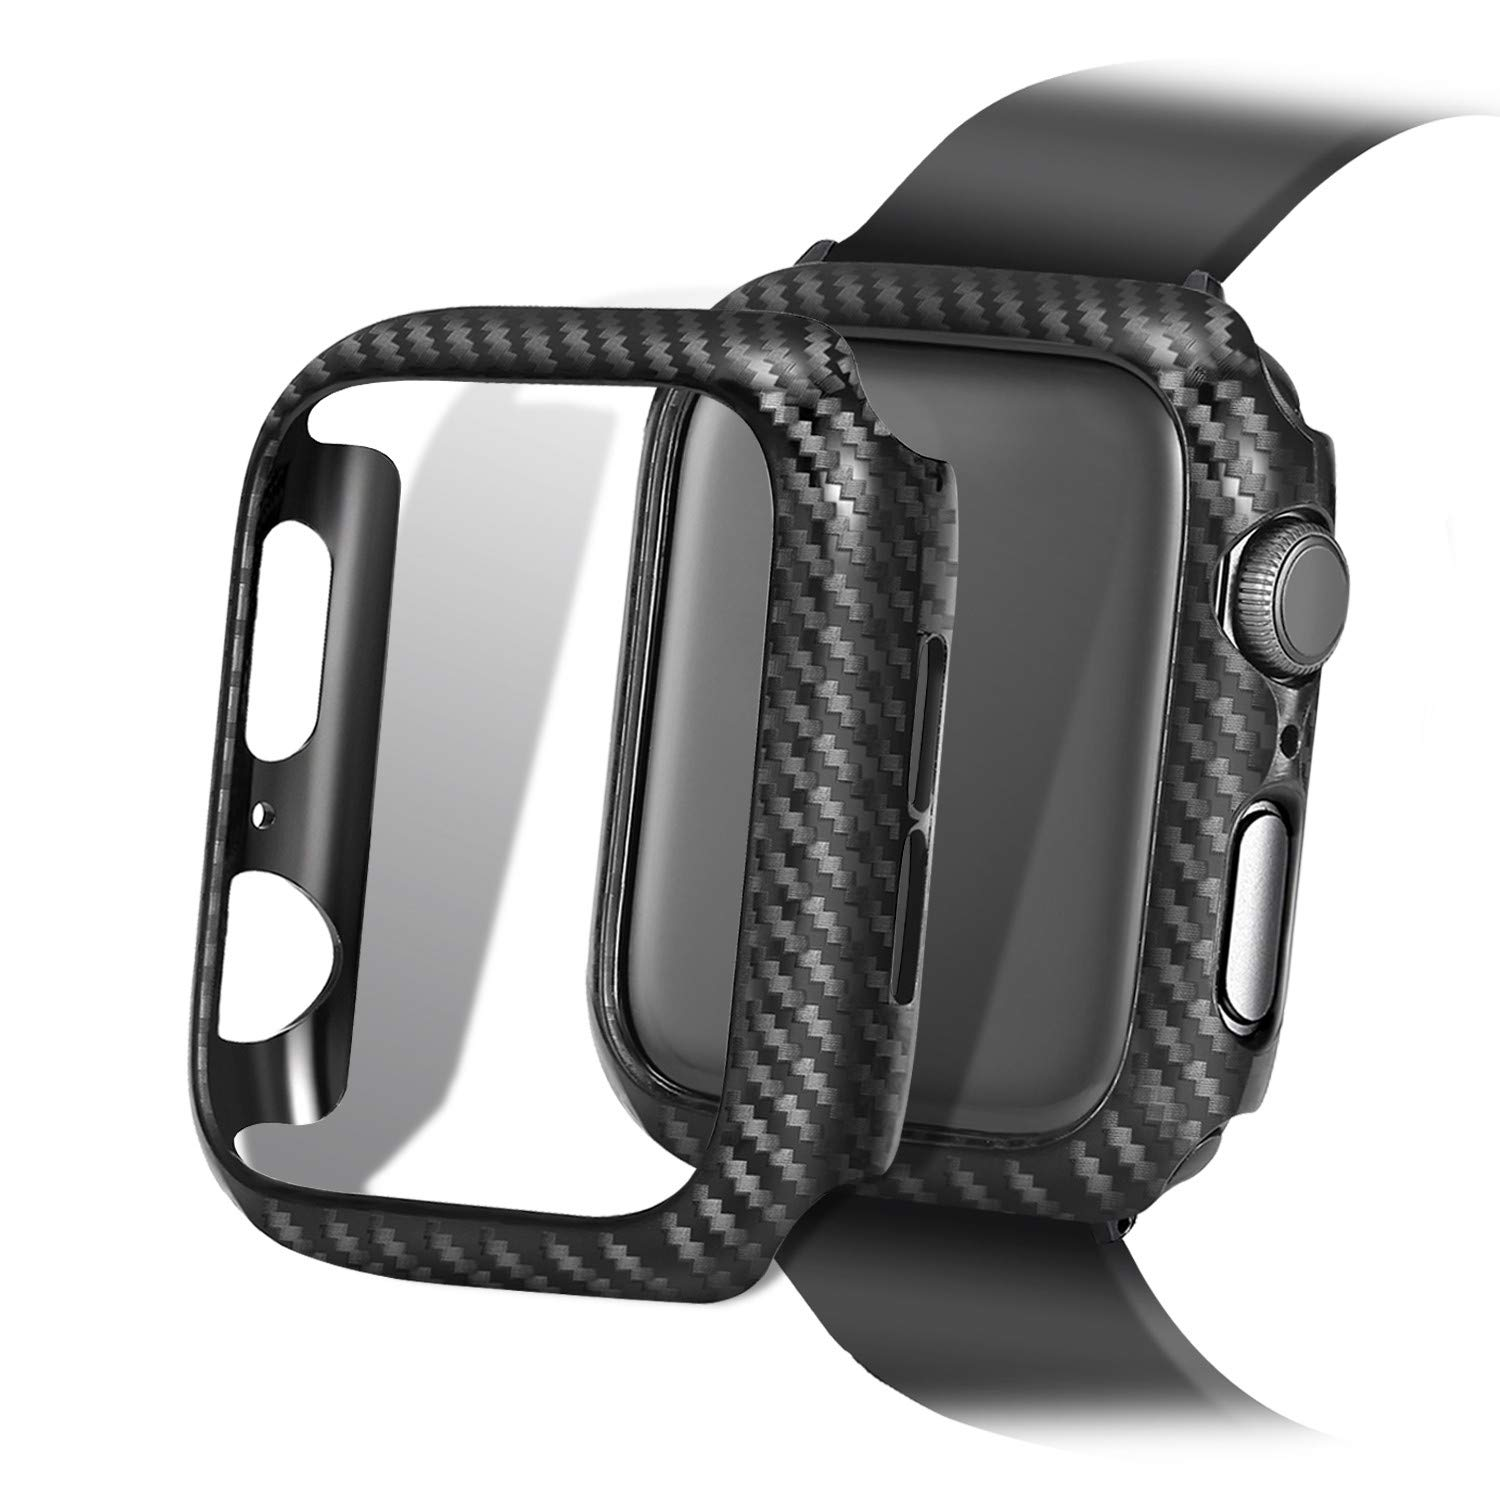 Carbon Fiber Texture Apple Watch Case 44mm Series 5 Series 4 - Hard PC Frame Case High-Gloss/Twill Weave Finish Protective Bumper Cover